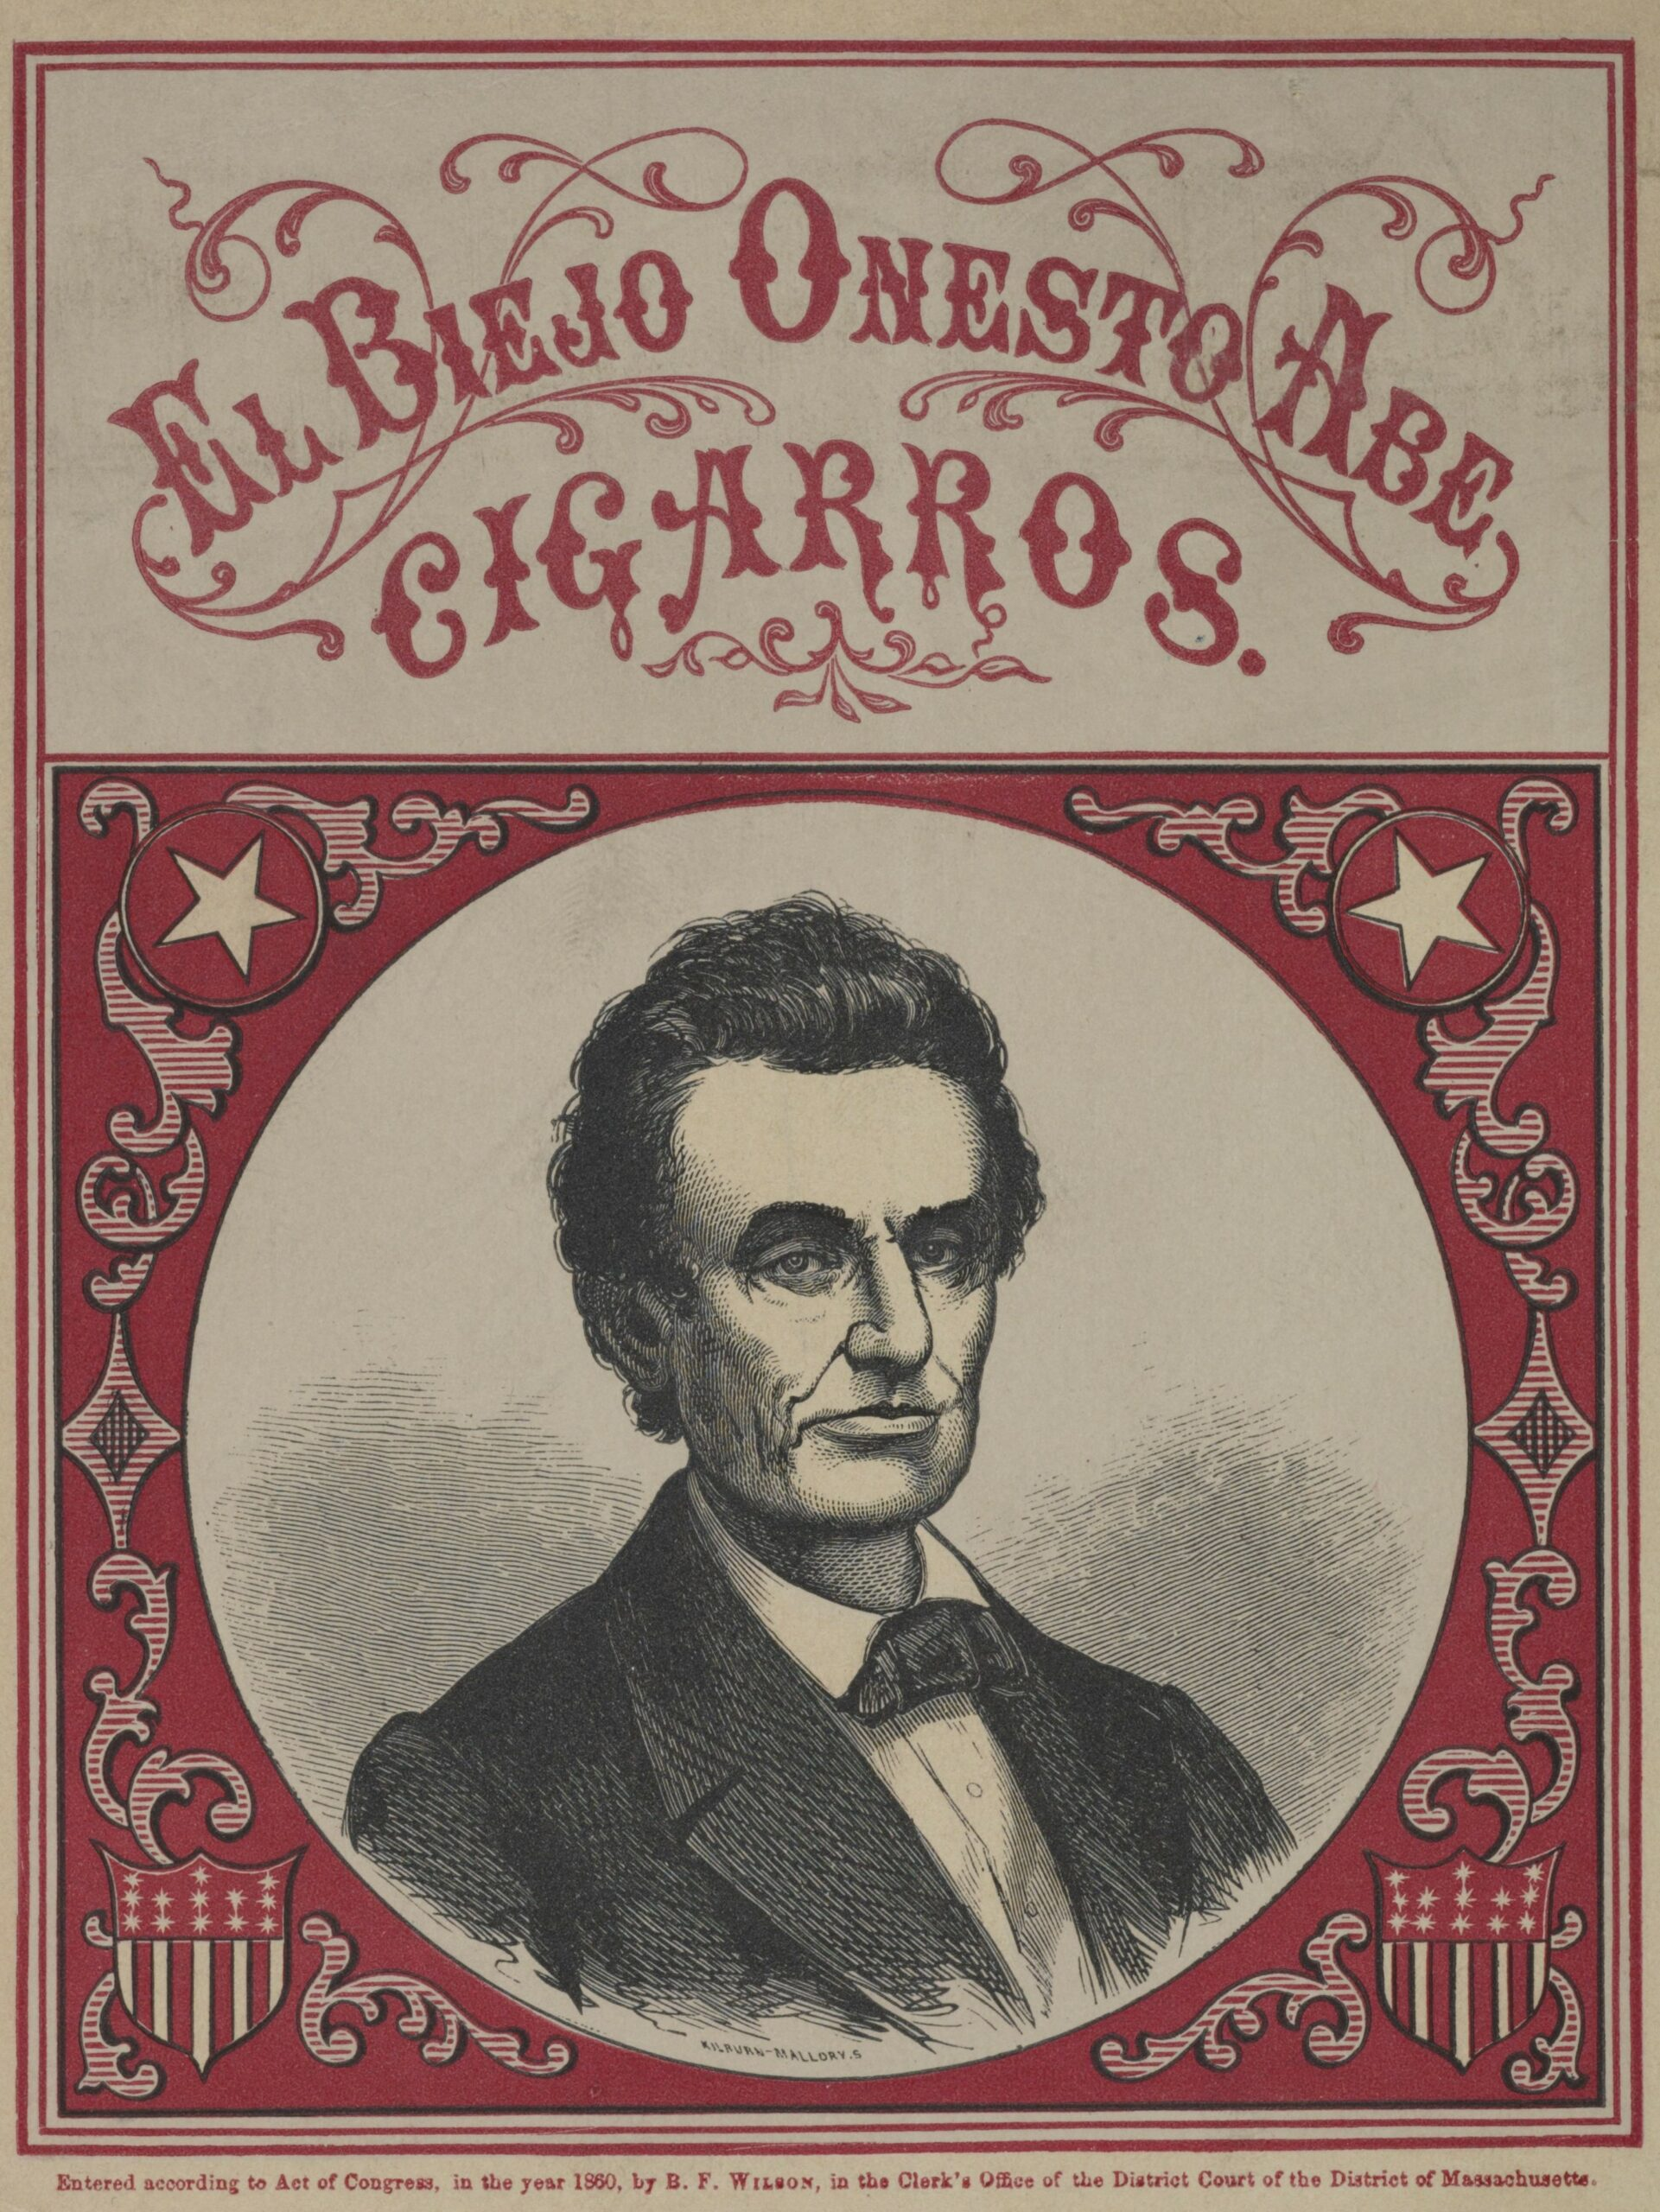 """Red and white cigar box label with sketch of Abe Lincoln titled """"El Biejo Onesto Abe Cigarros"""""""